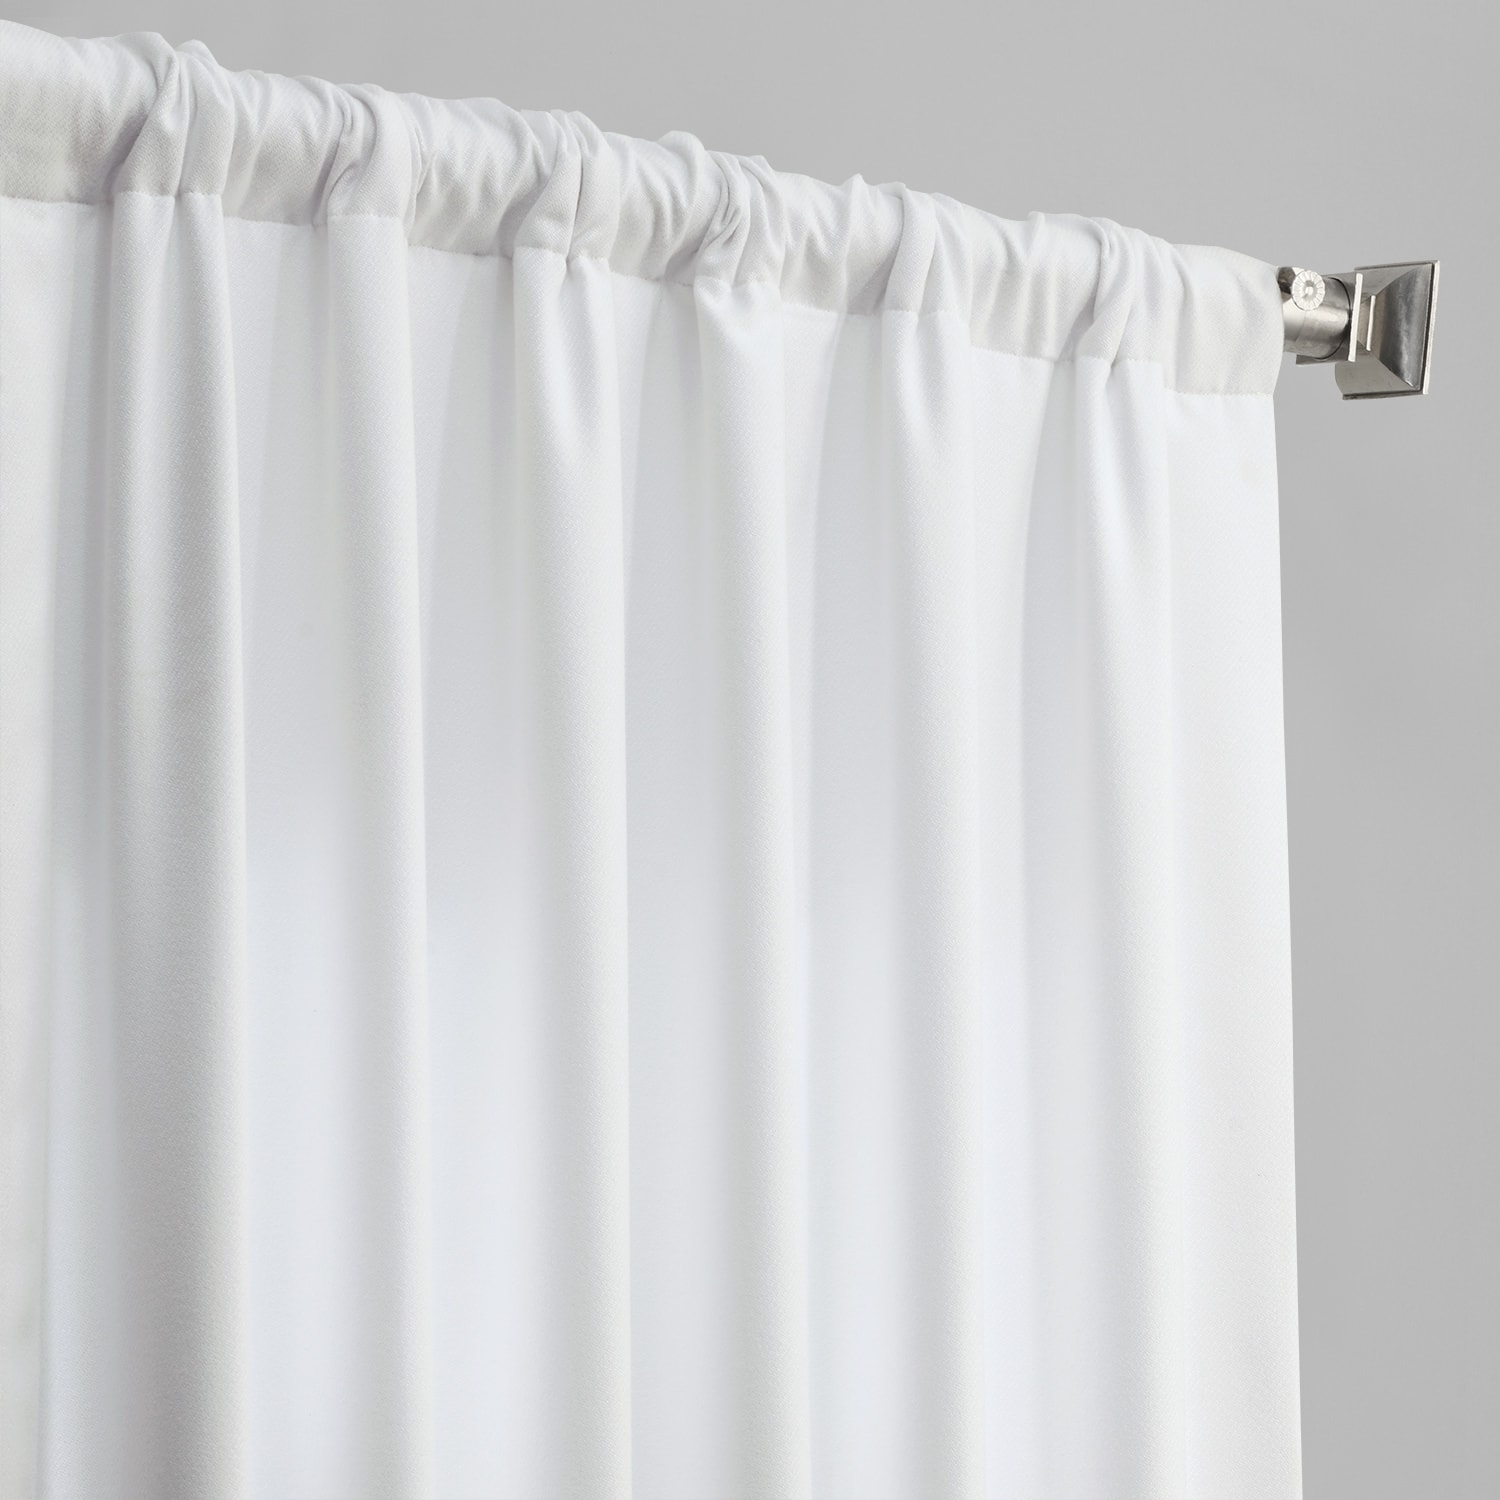 Snow White Thermal Room Darkening Heathered Italian Woolen Weave Curtain